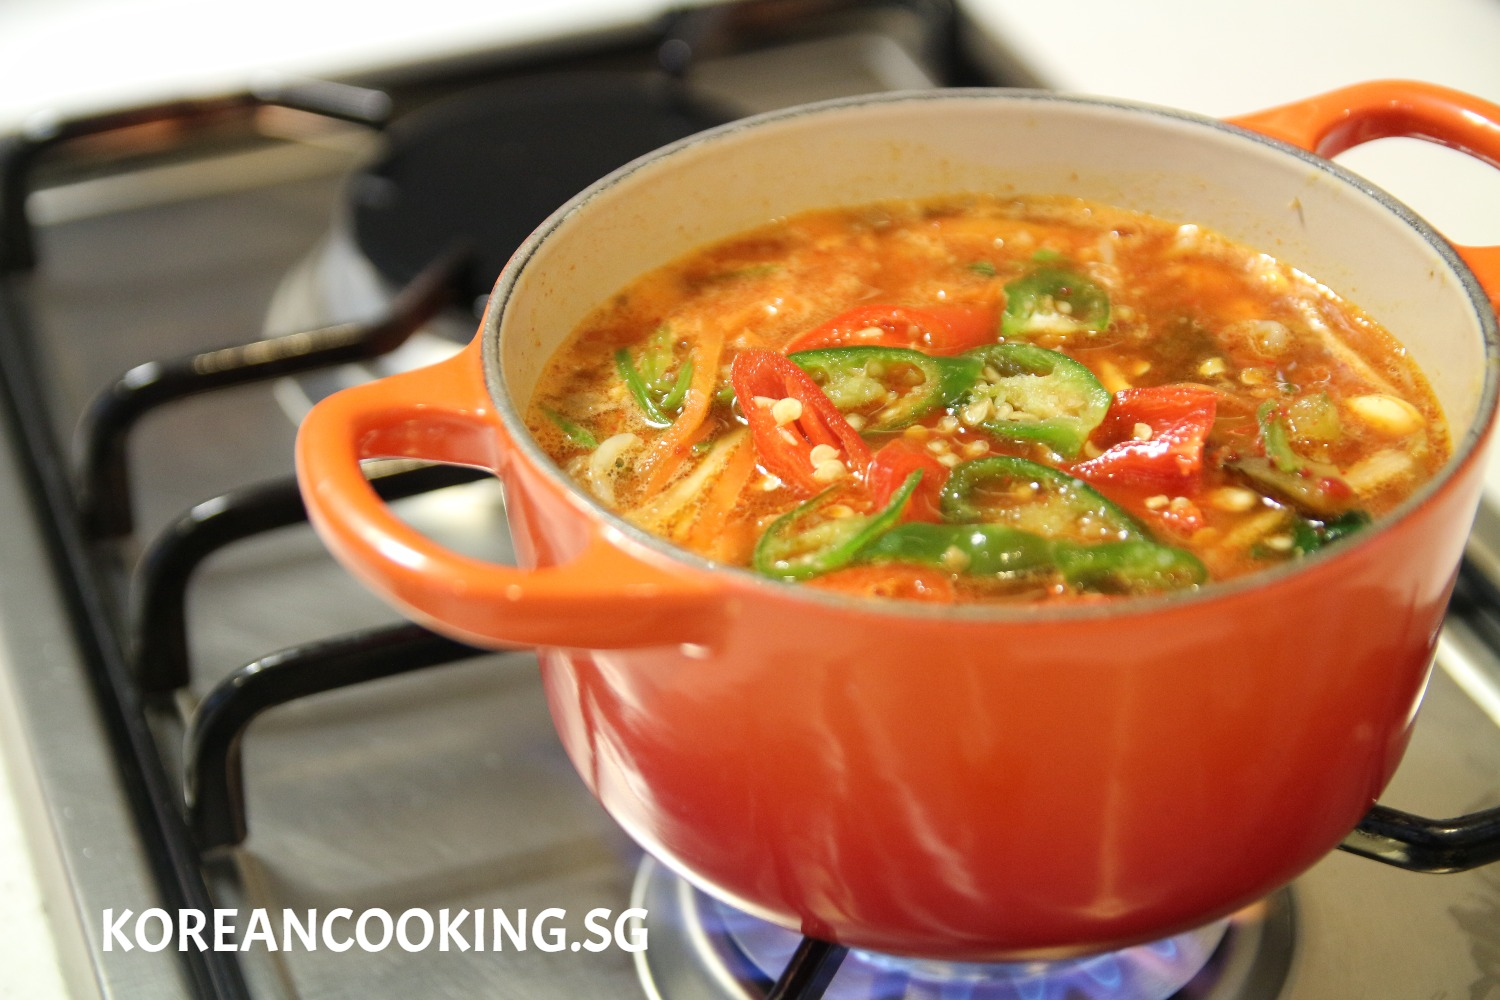 SPICY BEEF & VEGETABLES SOUP